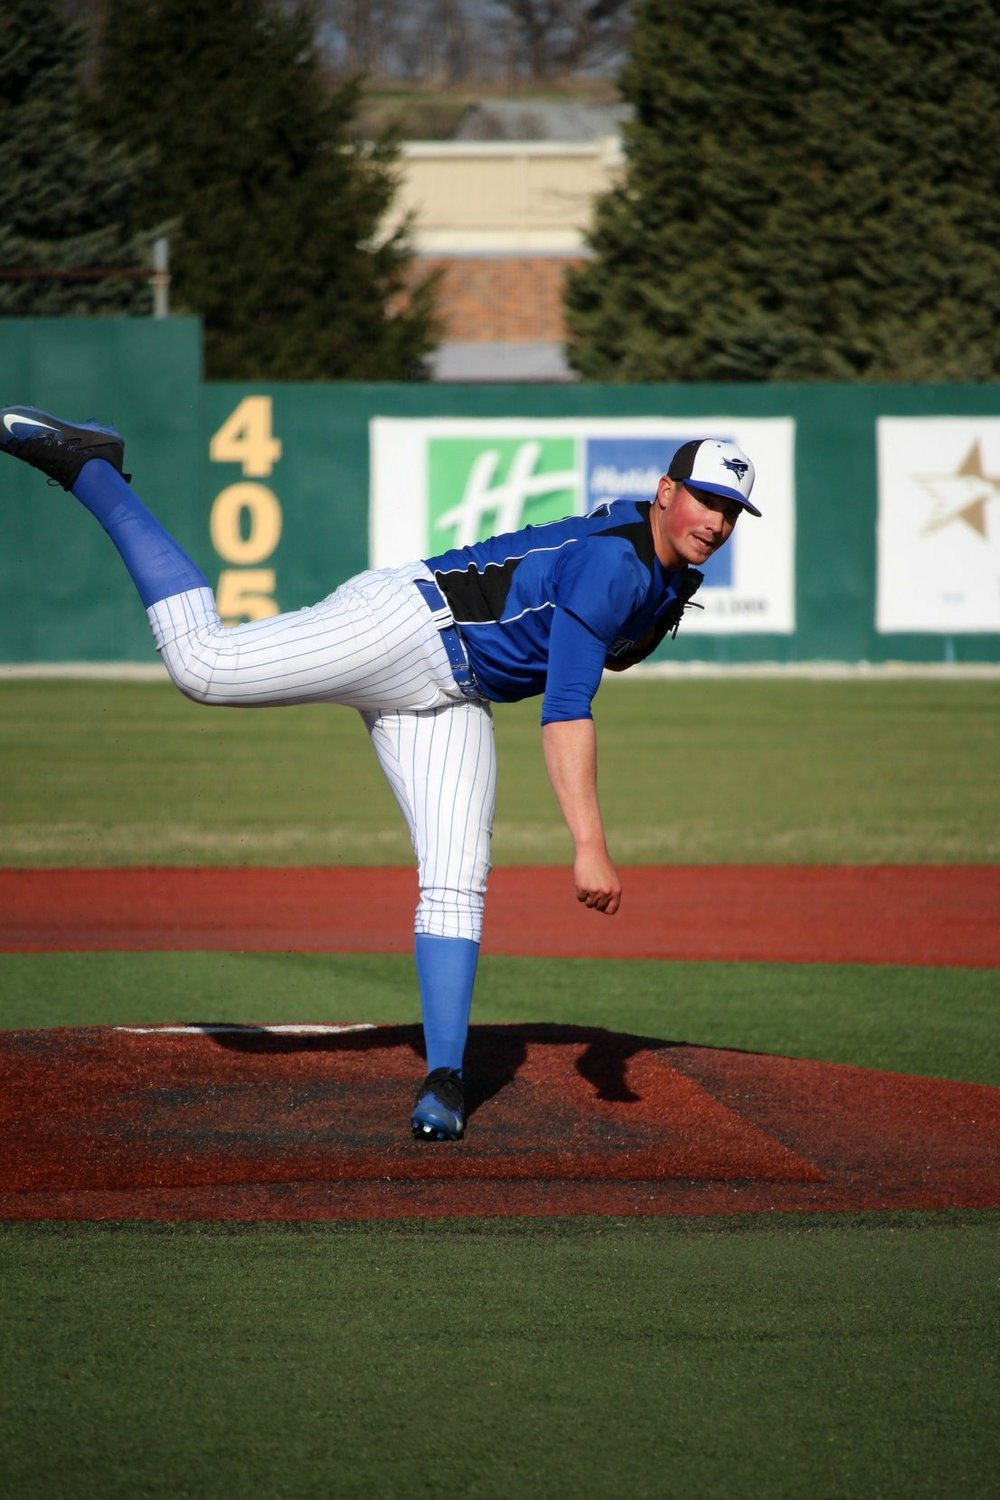 Right-hander Indigo Diaz (North Vancouver, B.C.), who's eligible for the 2018 MLB draft in June, has been dominant in his sophomore season at Iowa Western. Photo Credit: Michael DiStefano